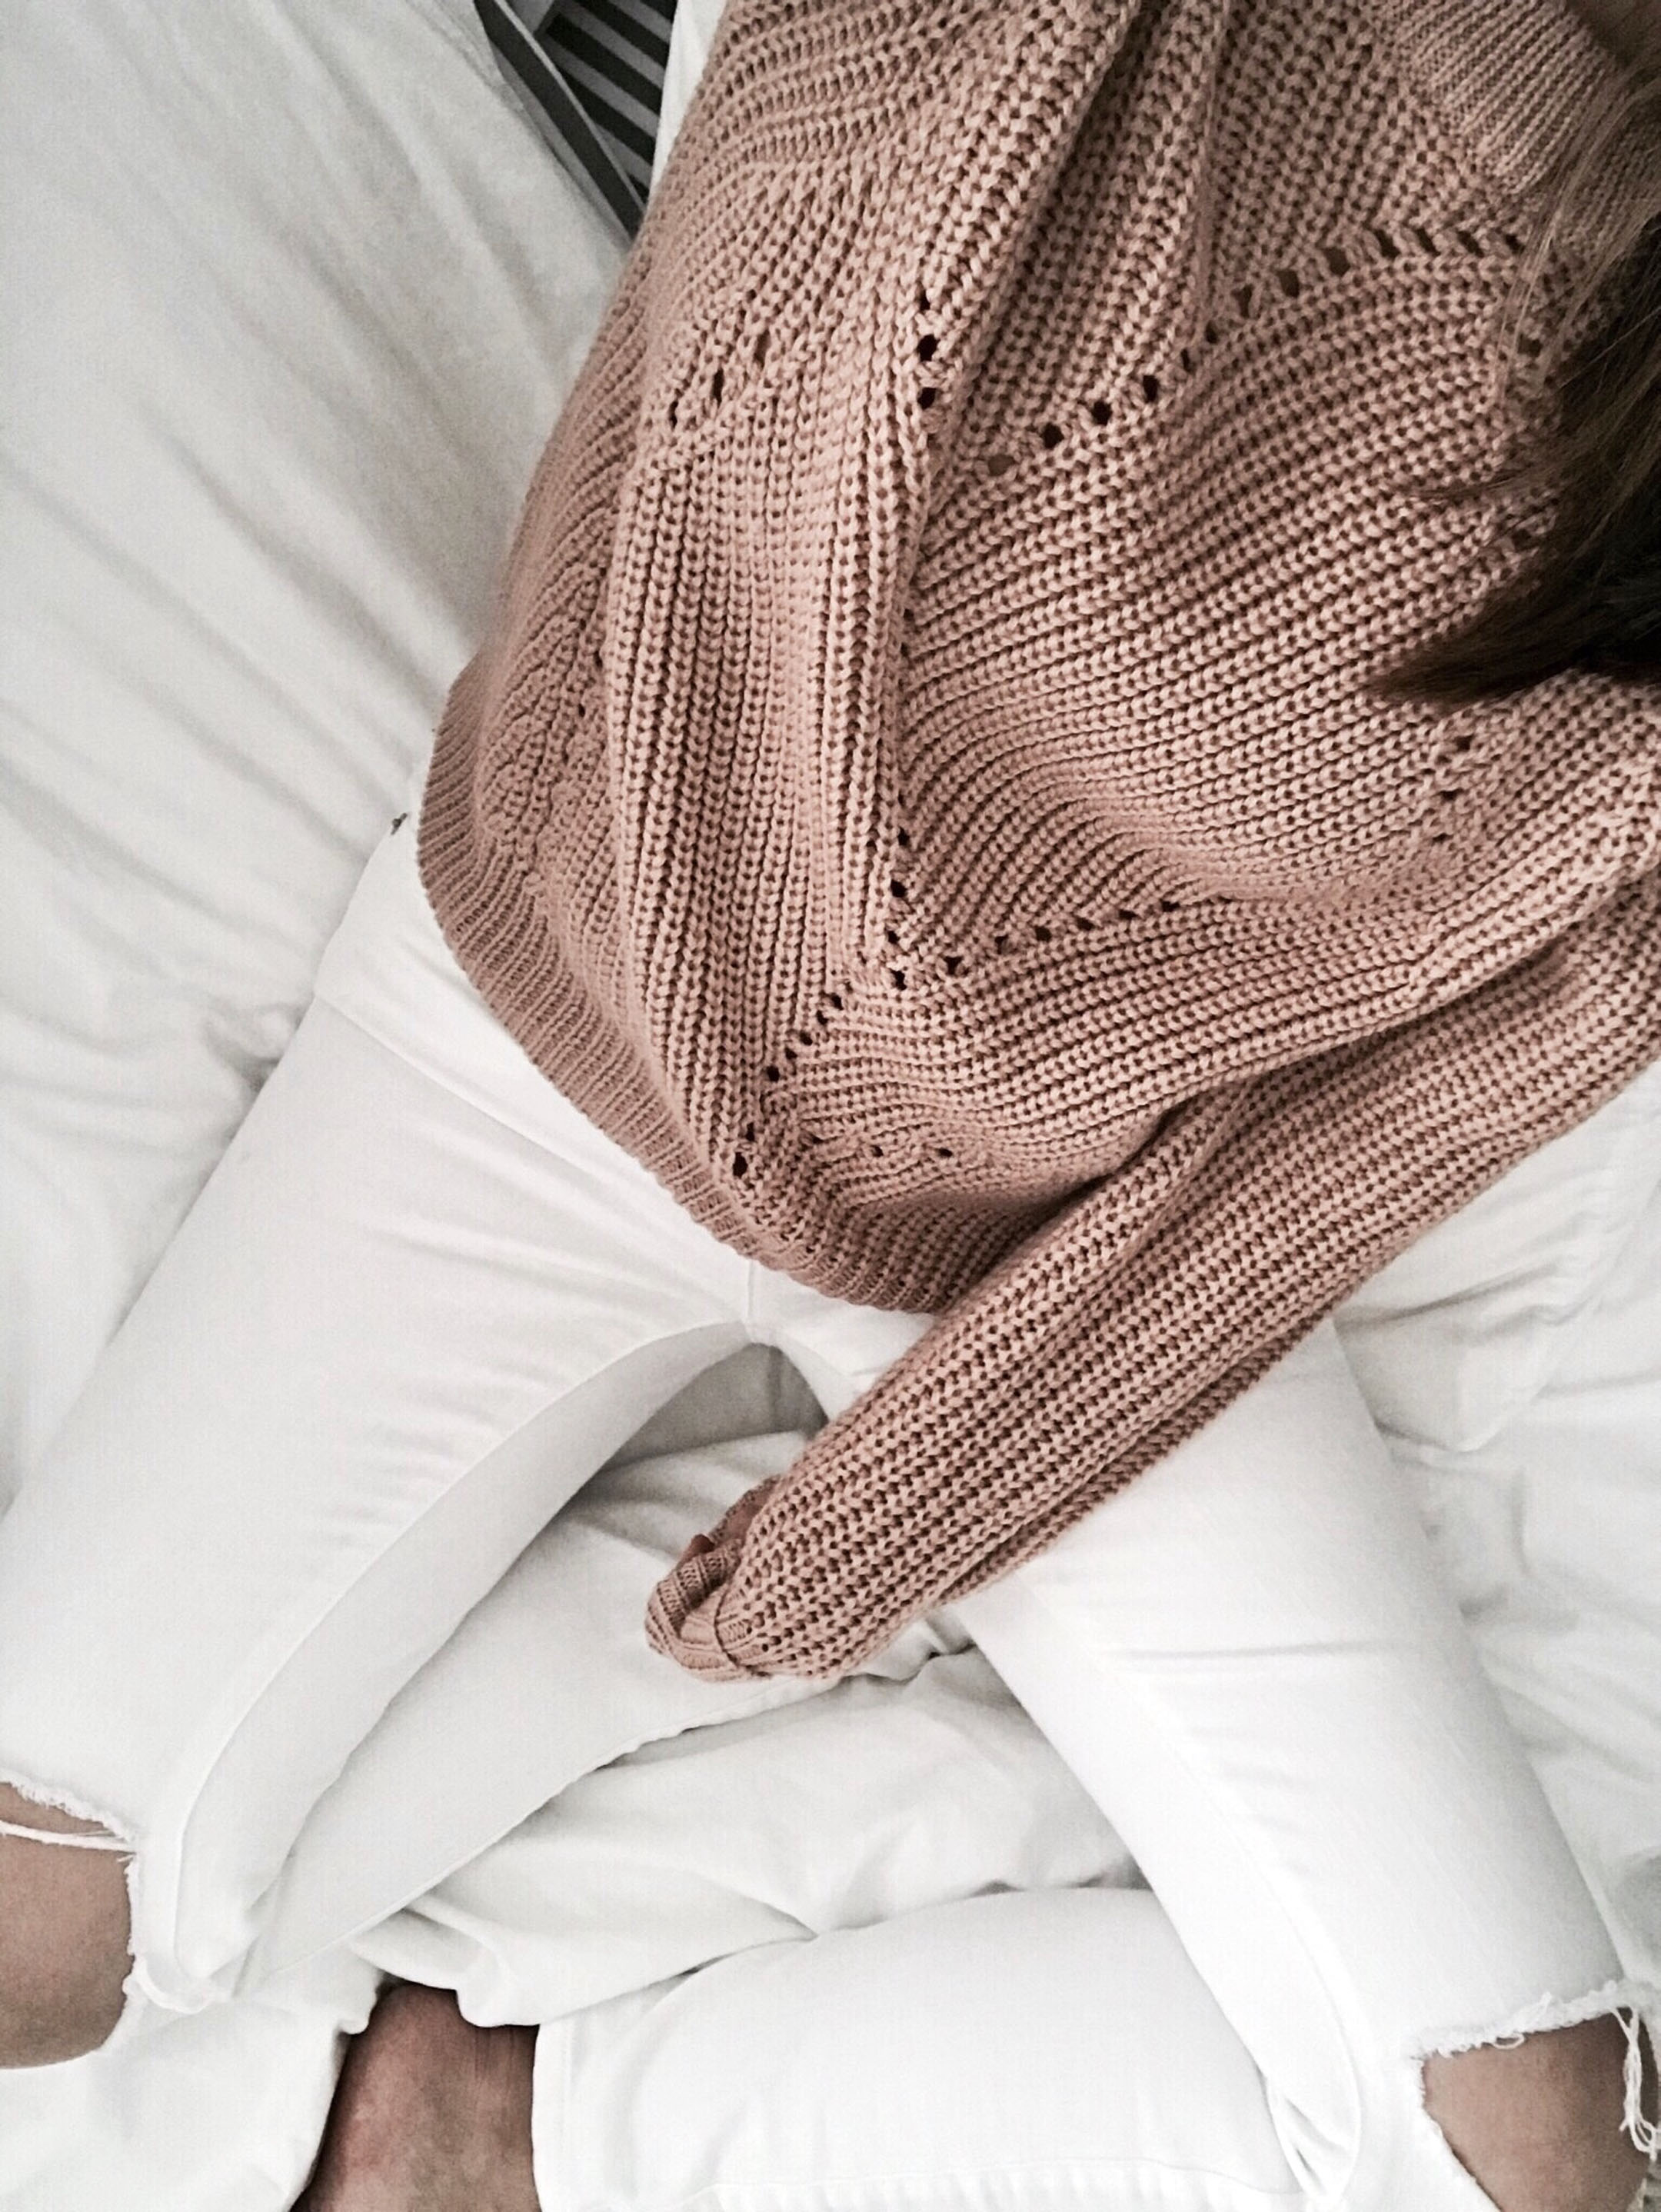 Dusty pink aritzia sweater